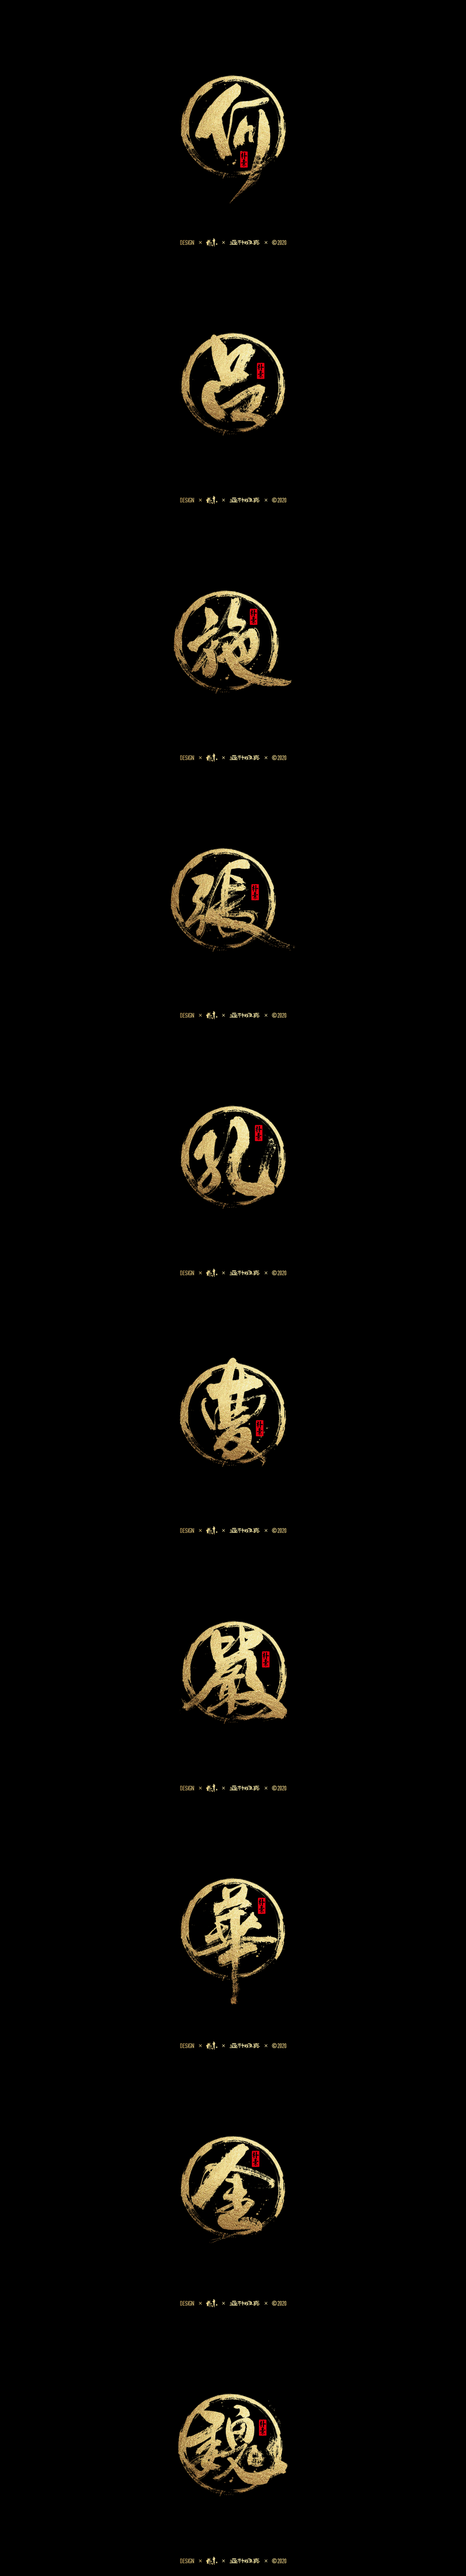 11P Chinese font design collection inspiration #.16